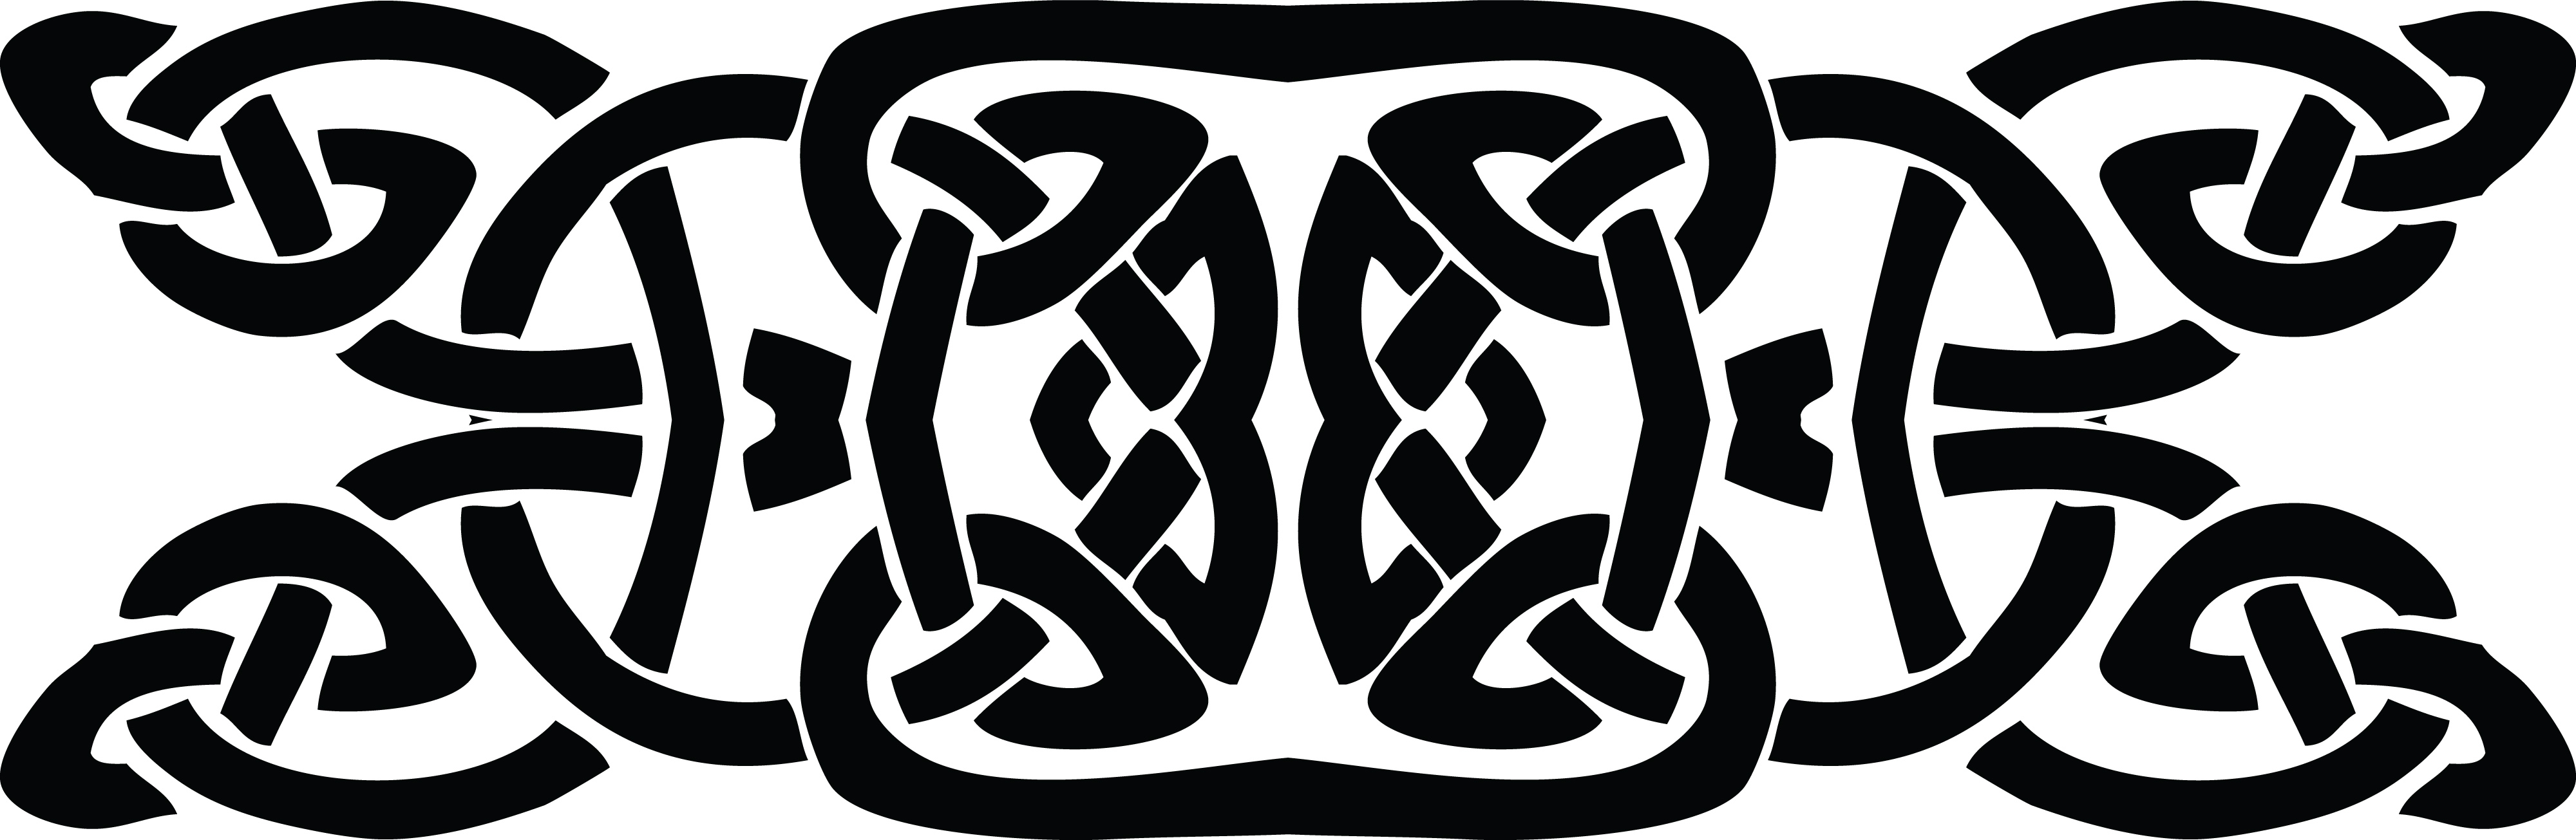 free clipart of a black and white celtic knot border rh free clipartof com celtic knot clipart images celtic knot vector clipart